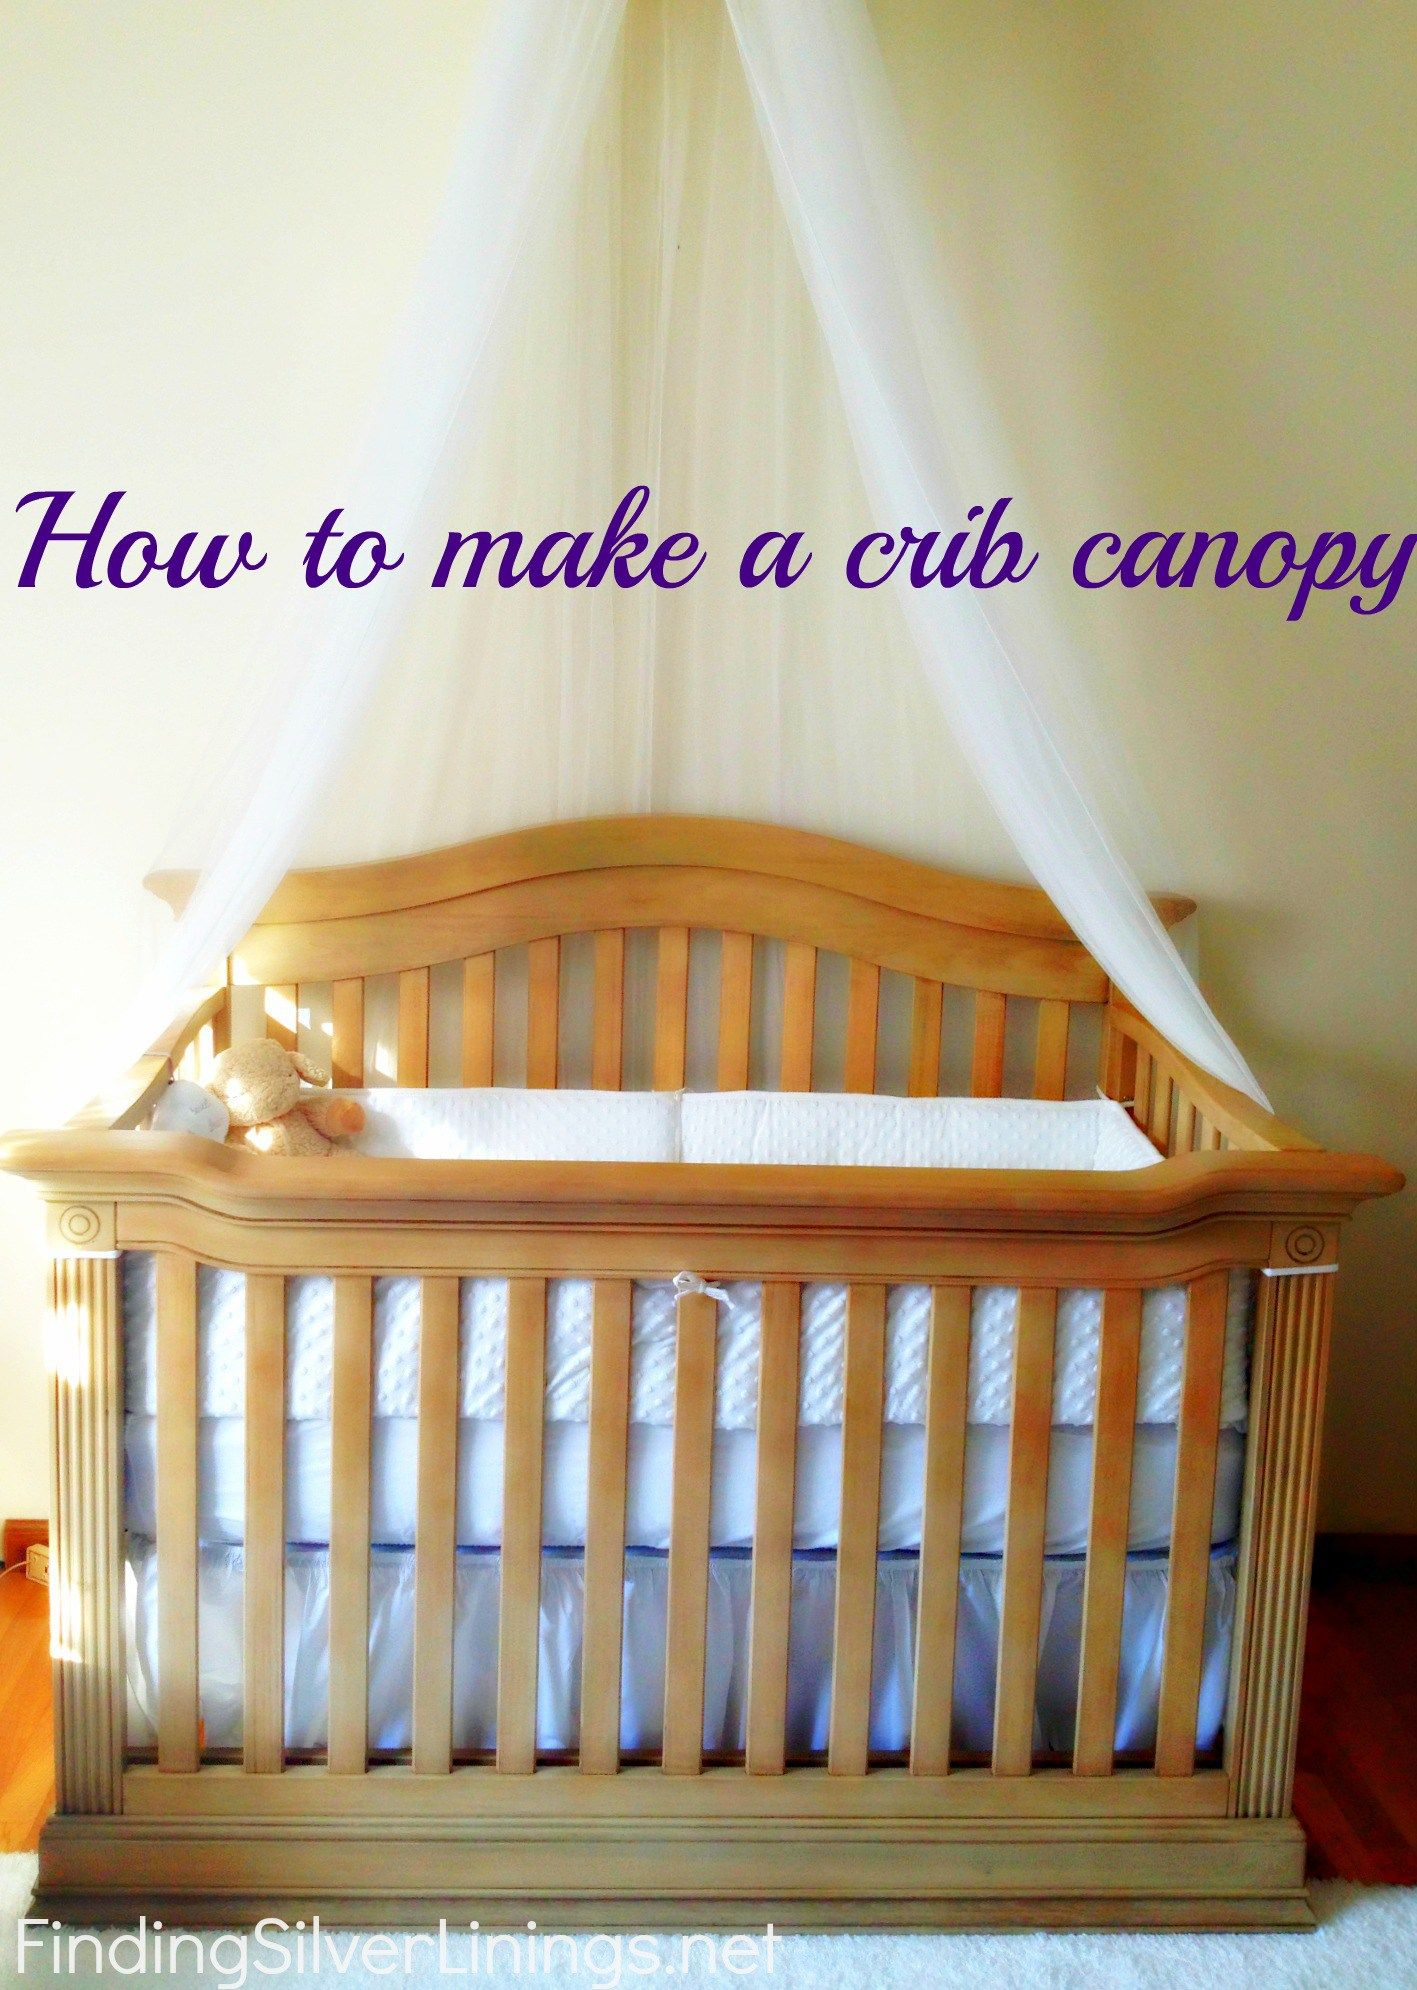 Jameson panel crib for sale - How To Make A Crib Canopy